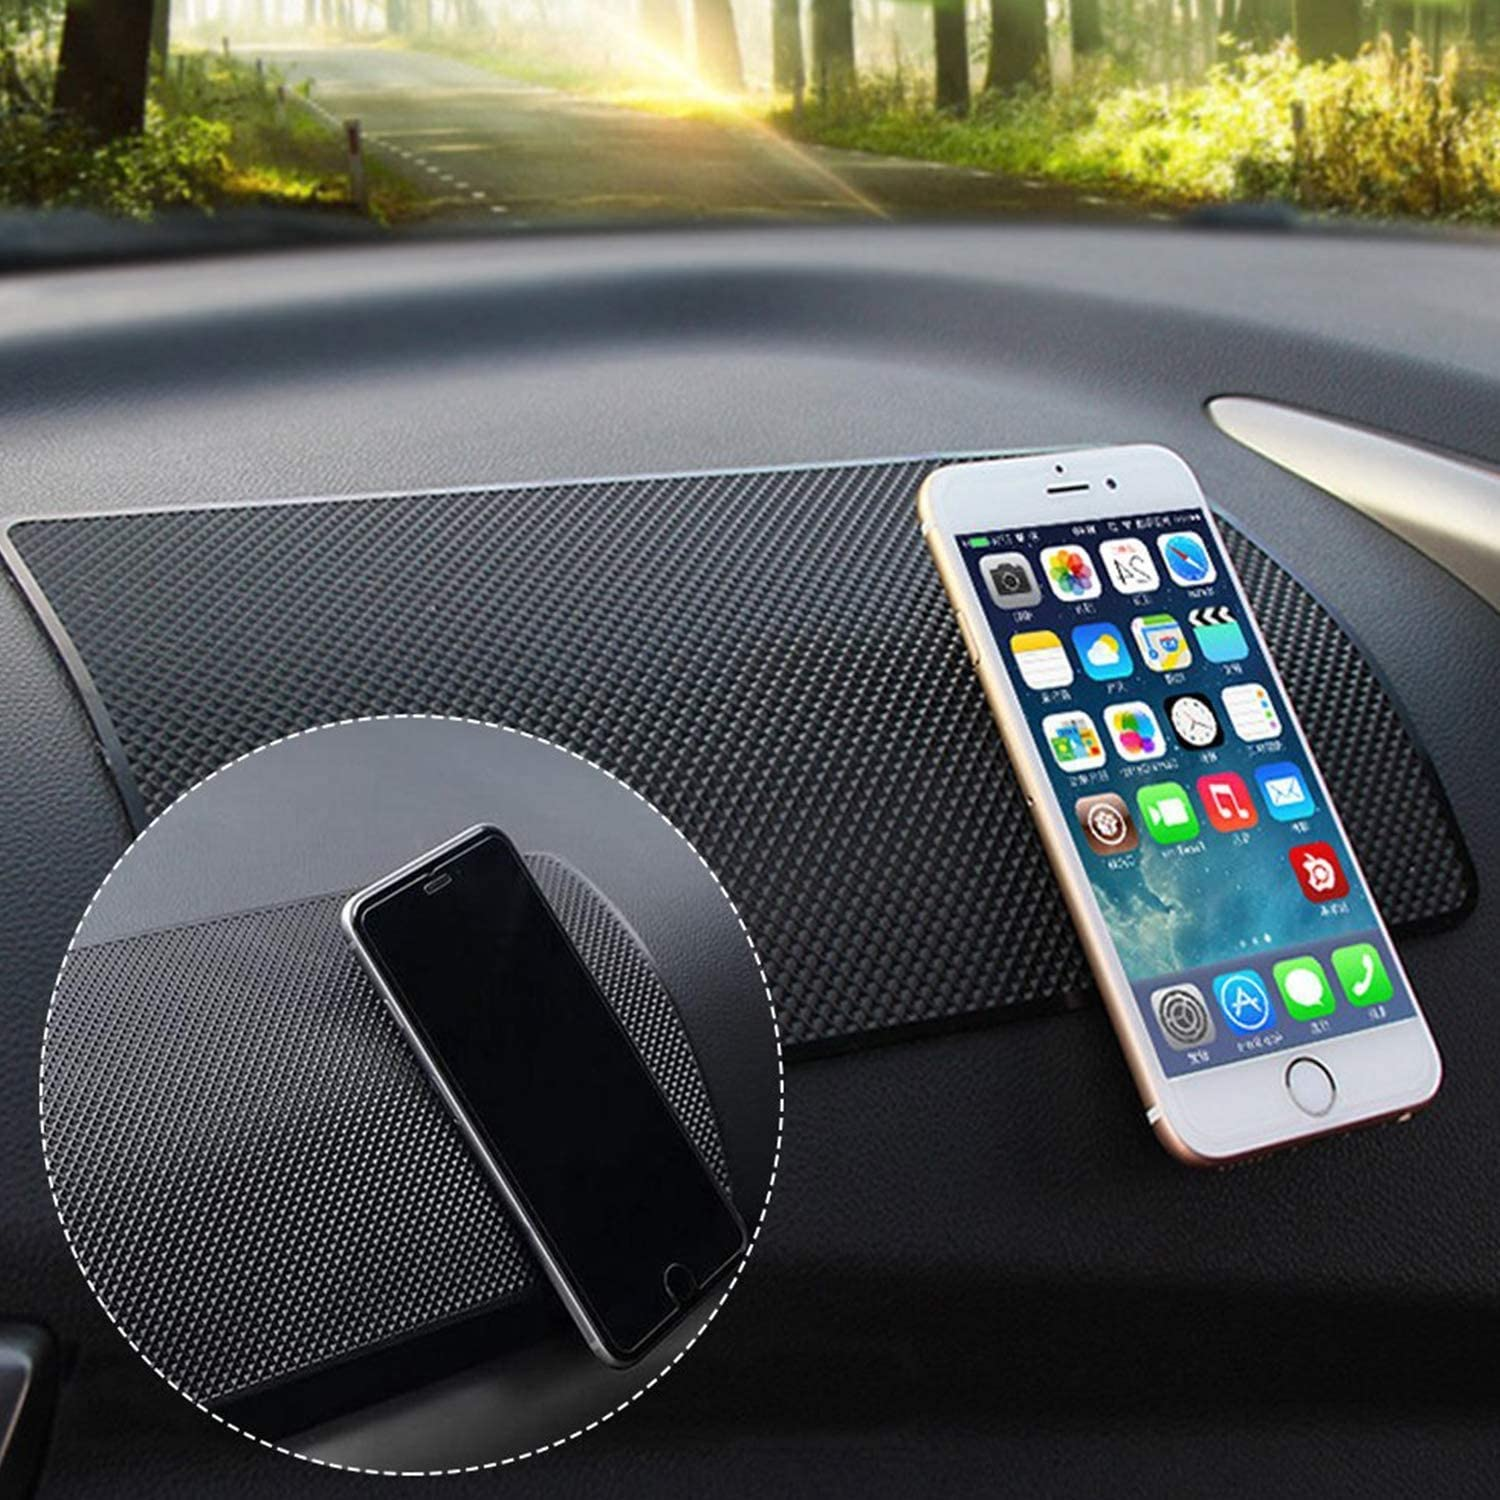 Sunglasses Electronic Devices CD USAMS 2Pack 11 x 6 inch Super Sticky Car Dashboard Anti Slip Mat Magic Anti Slip Mat Car Dashboard Sticky Pad Adhesive Mat for Cell Phone Keys